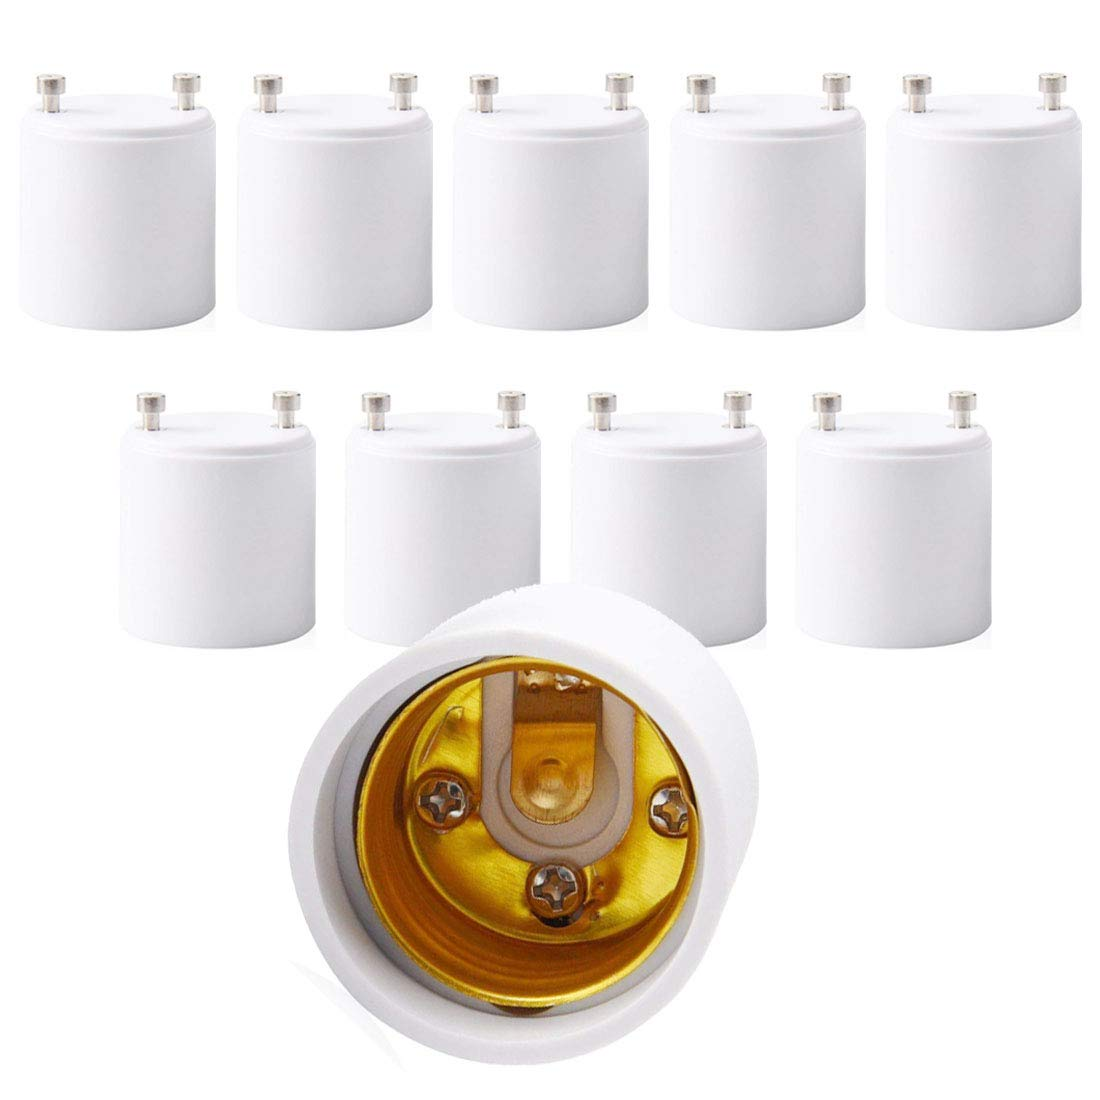 GU24 to E26 Light Bulb Socket Adapter, Lamp Base Converter, Maximum Wattage 150W, Heat Resistant Up to 200℃, Fire Resistant, Converts Pin Base to Screw-in Socket.(Pack of 10)